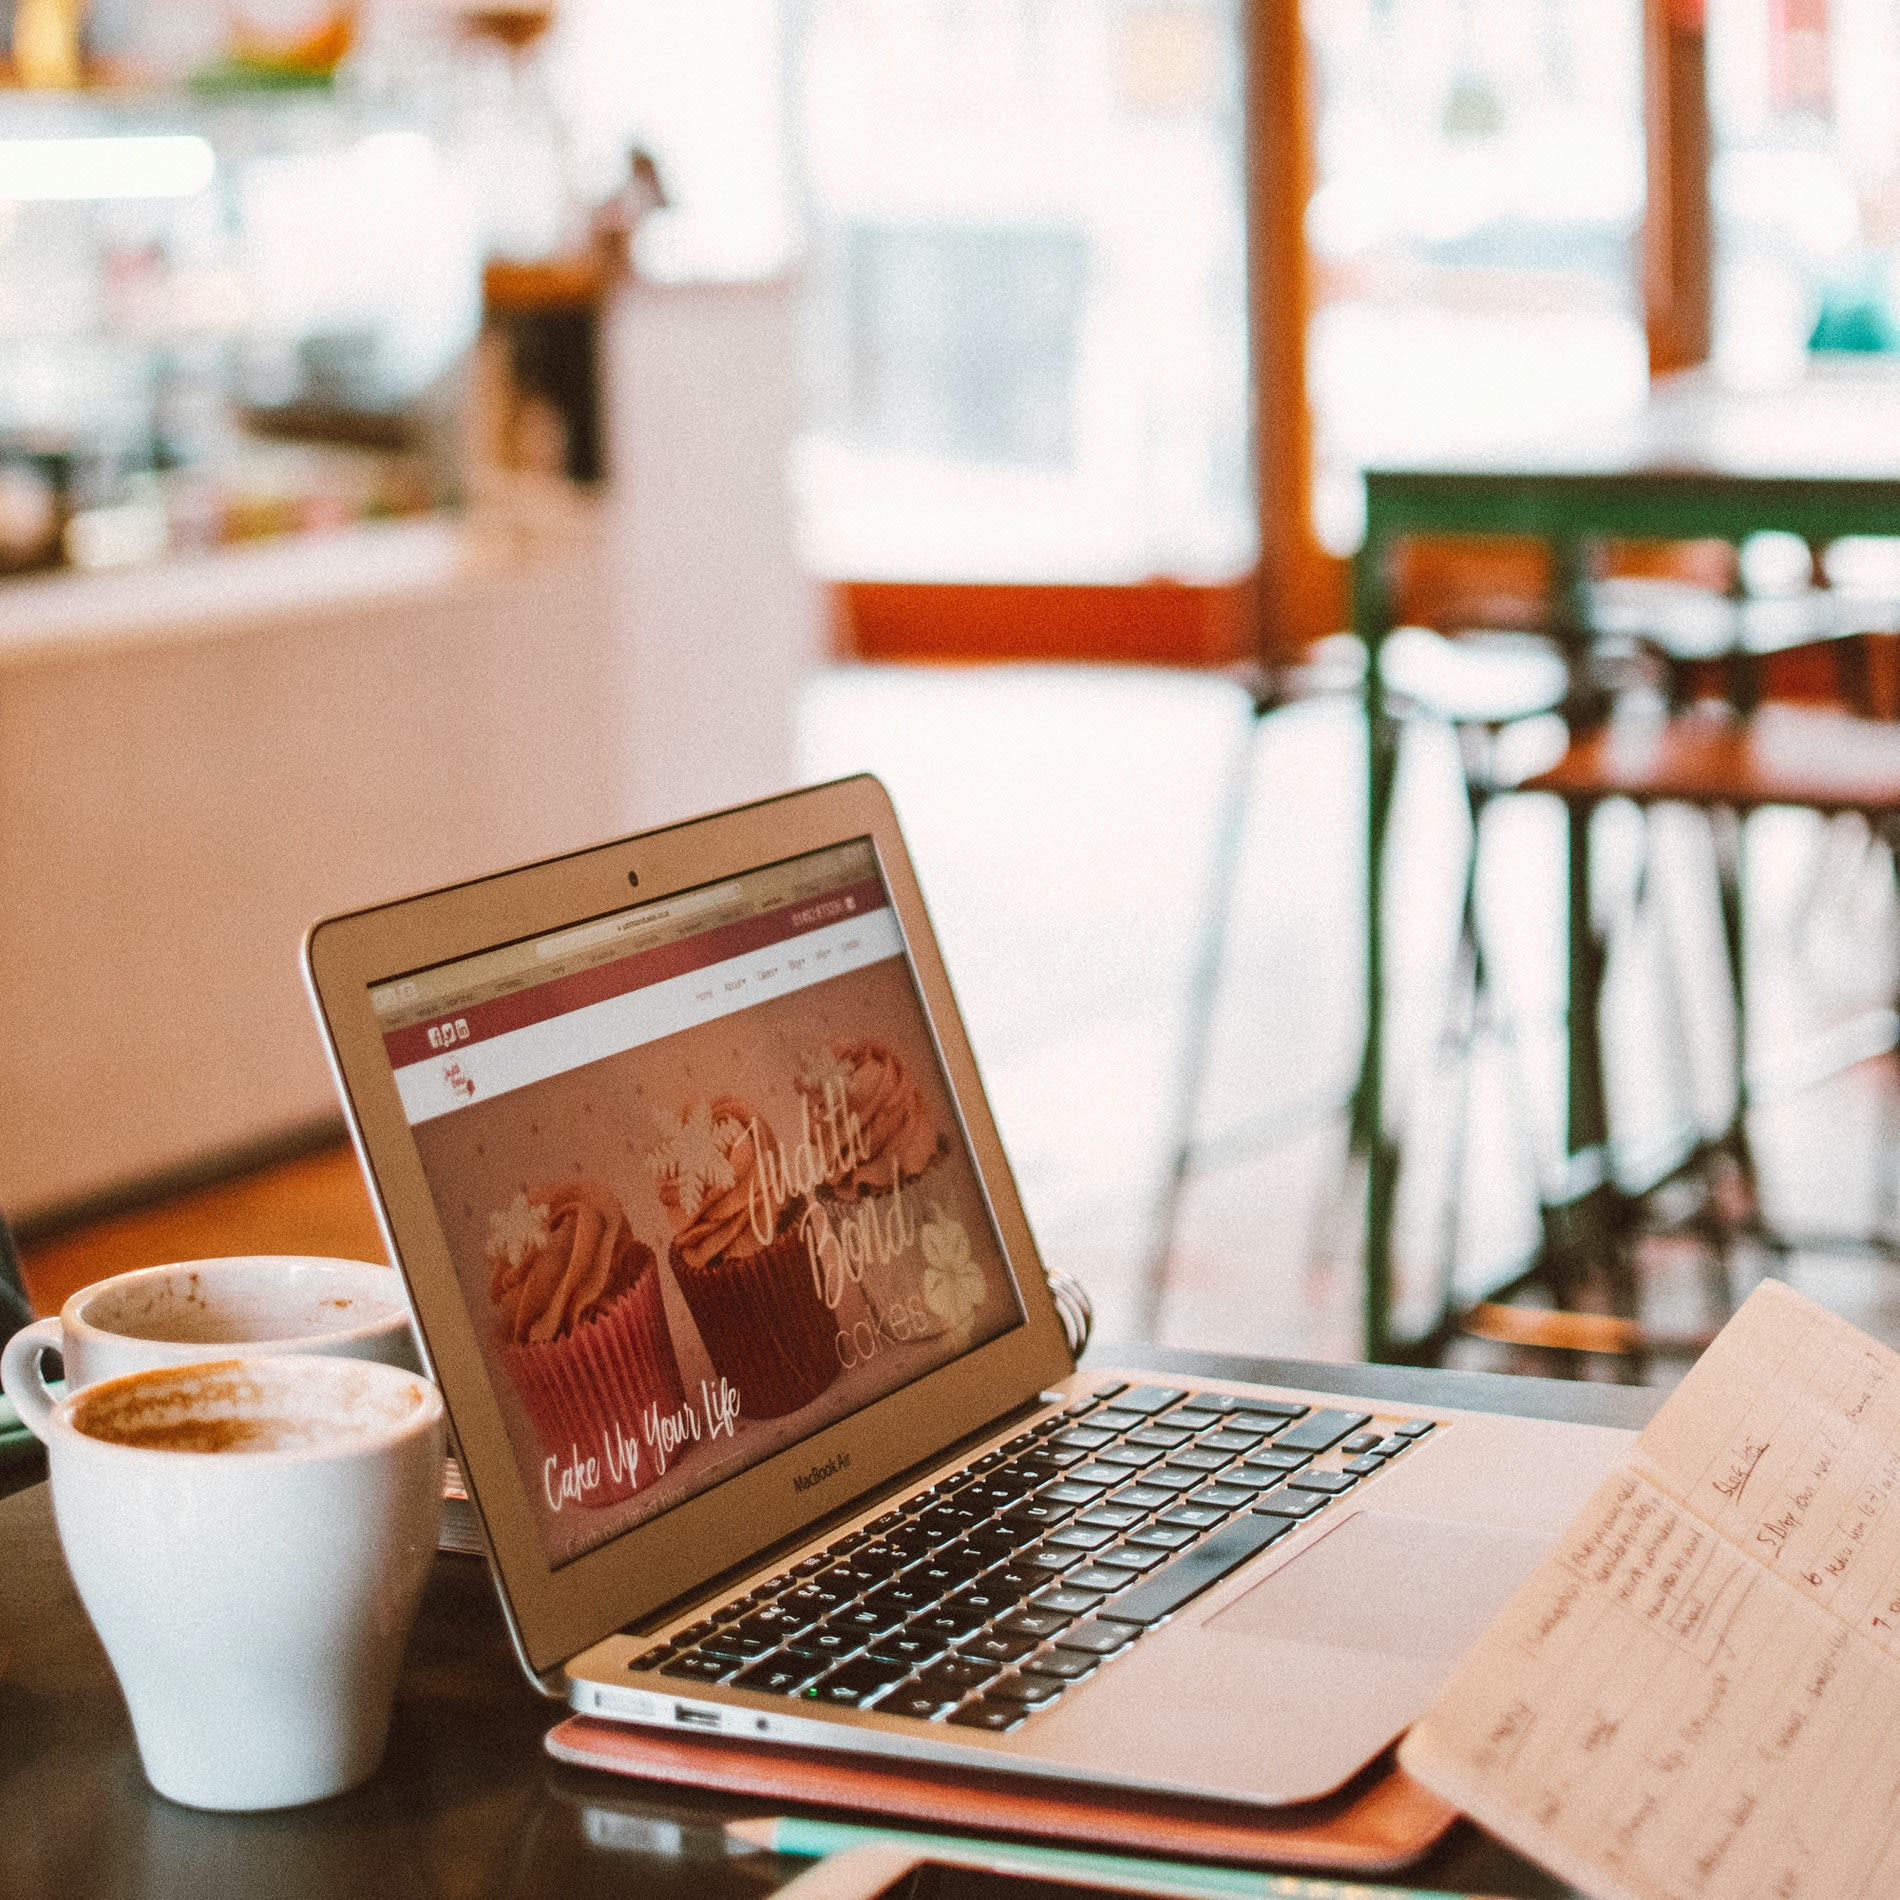 Top 5 coffee shops to work from in Cape Town